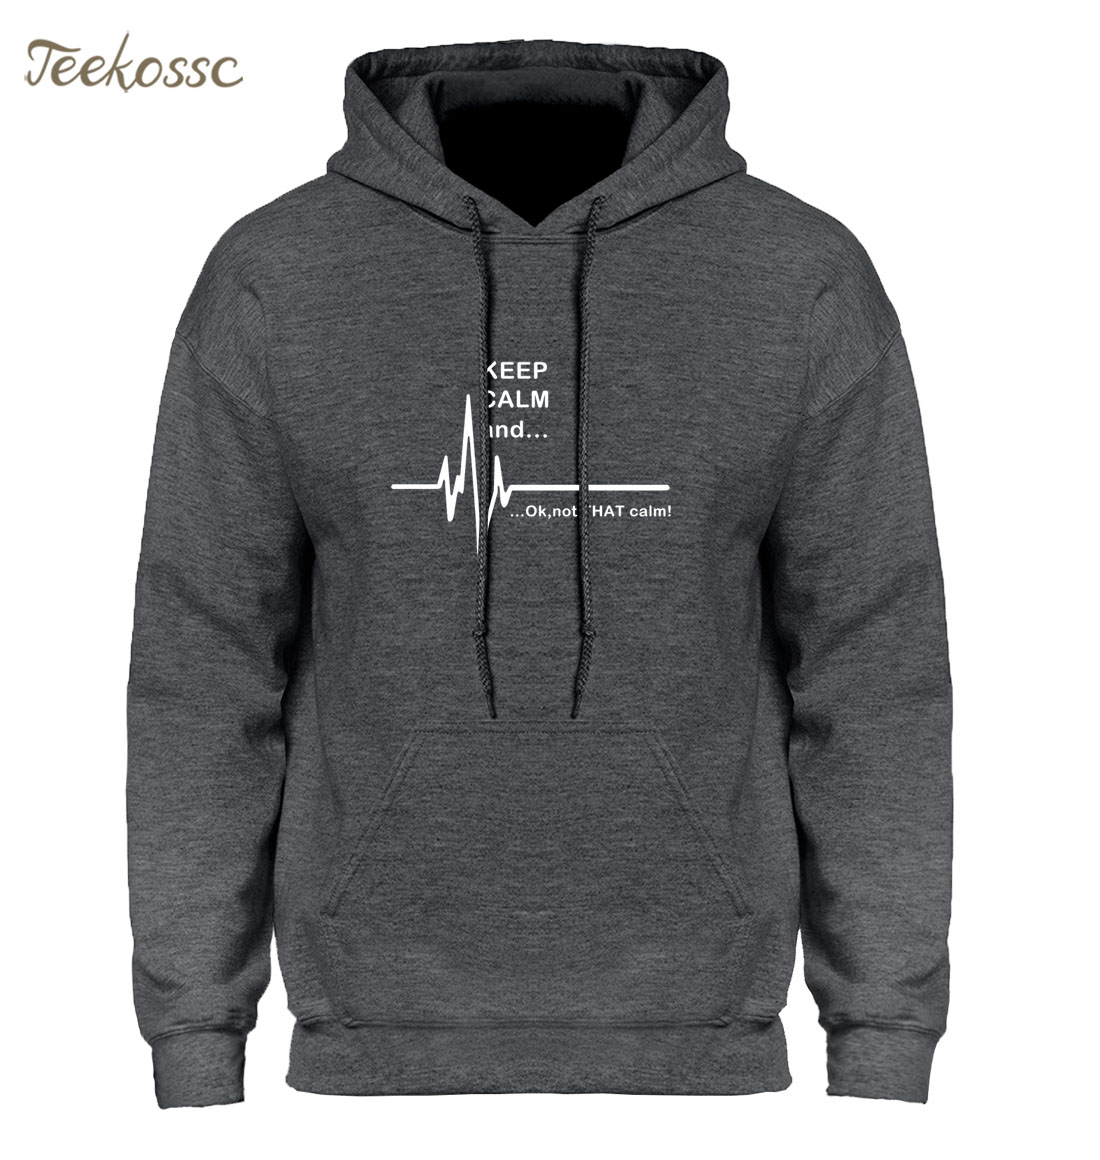 Keep Calm and...Not That Calm Hoodie Men EKG Heart Rate Paramedic Nurse Hoodies Mens 2018 Winter Autumn Funny Hooded Sweatshirt